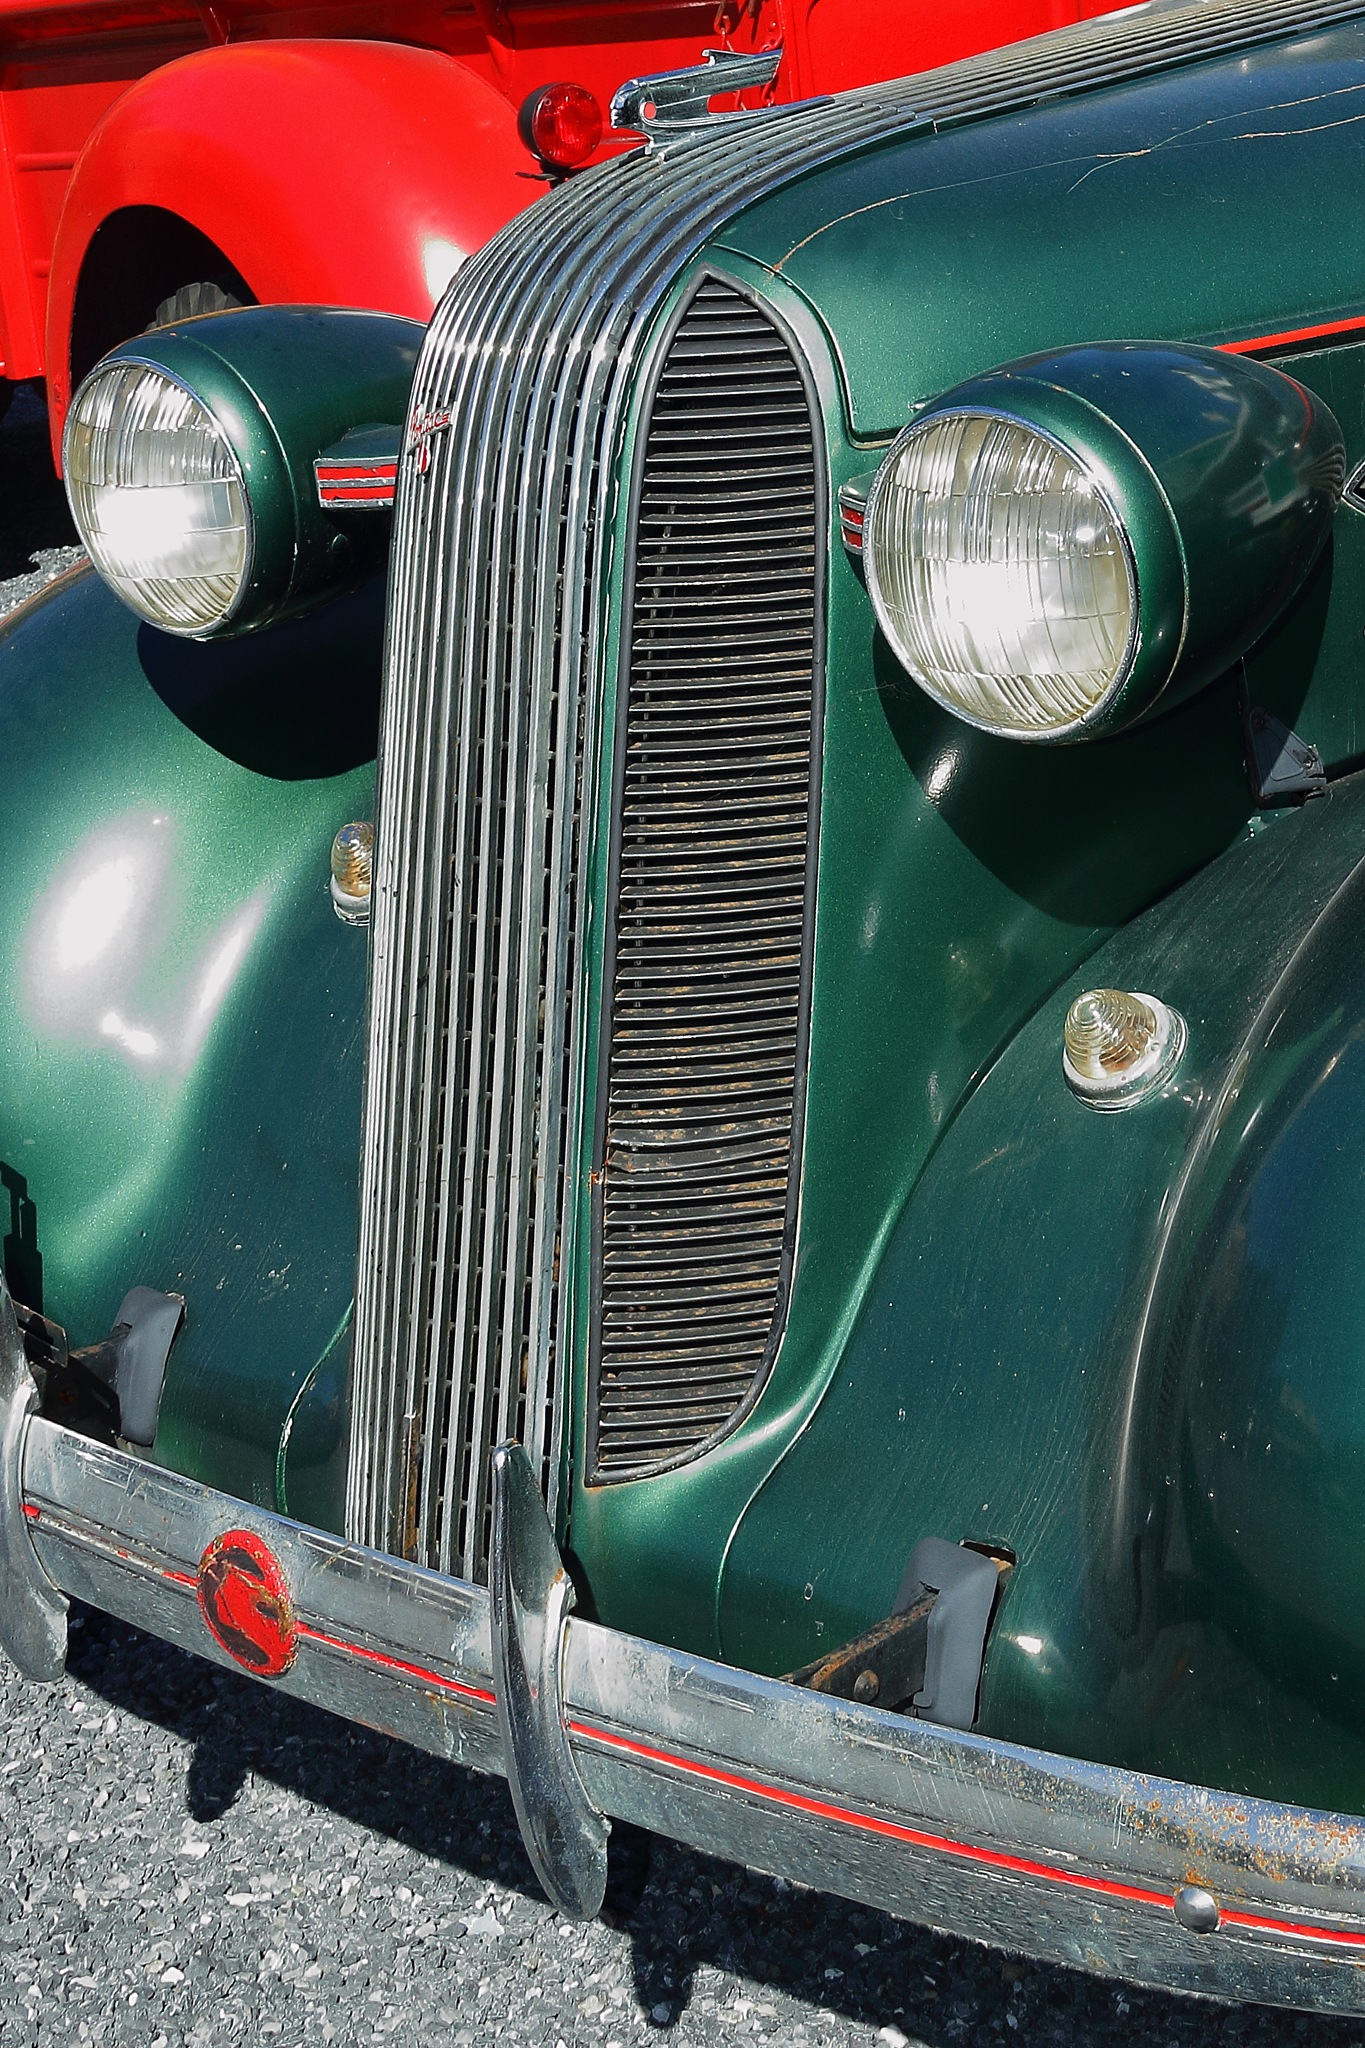 Vintage Car by Anant Wagle